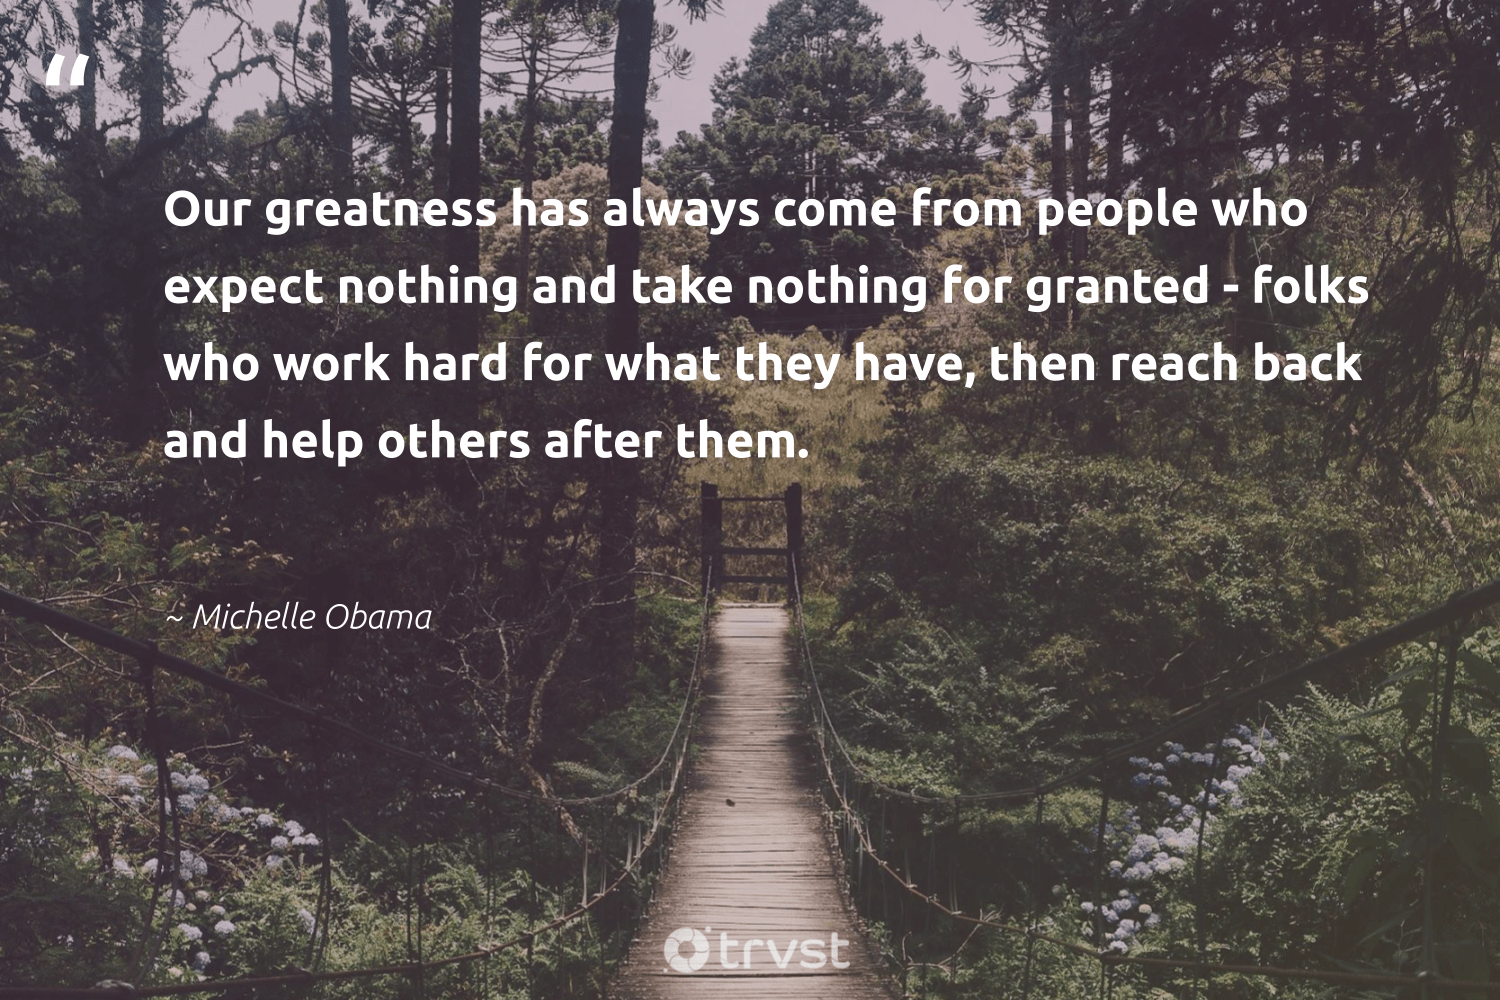 """Our greatness has always come from people who expect nothing and take nothing for granted - folks who work hard for what they have, then reach back and help others after them.""  - Michelle Obama #trvst #quotes #futureofwork #bethechange #softskills #planetearthfirst #nevergiveup #beinspired #begreat #ecoconscious #dotherightthing #socialchange"